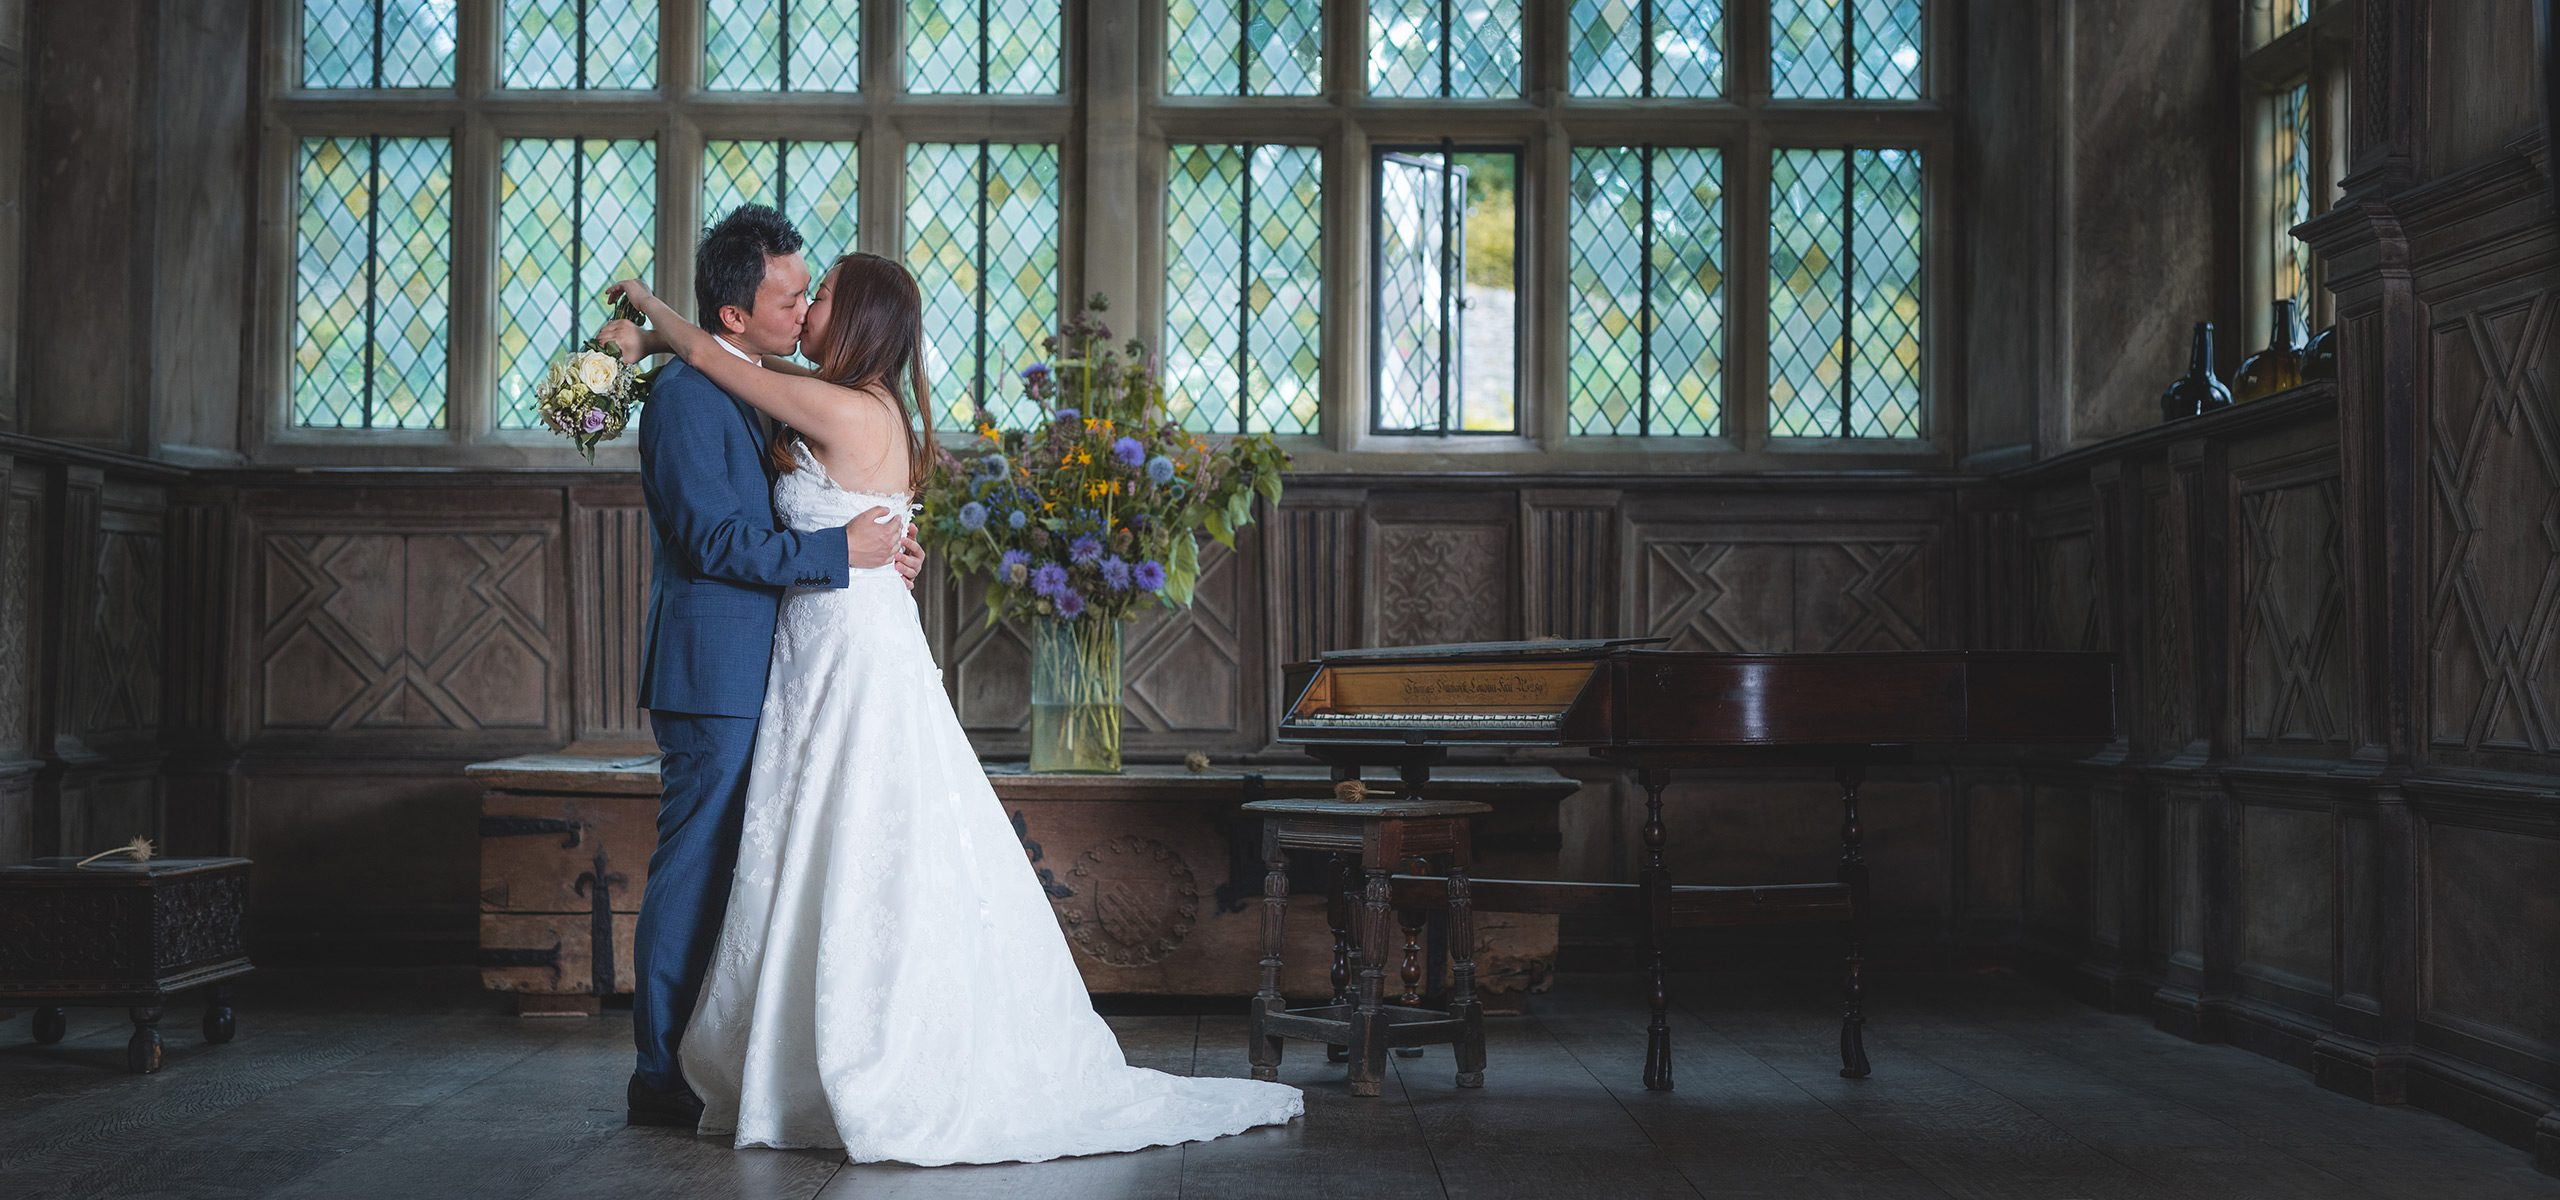 Derbyshire Wedding Photographer - Haddon Hall